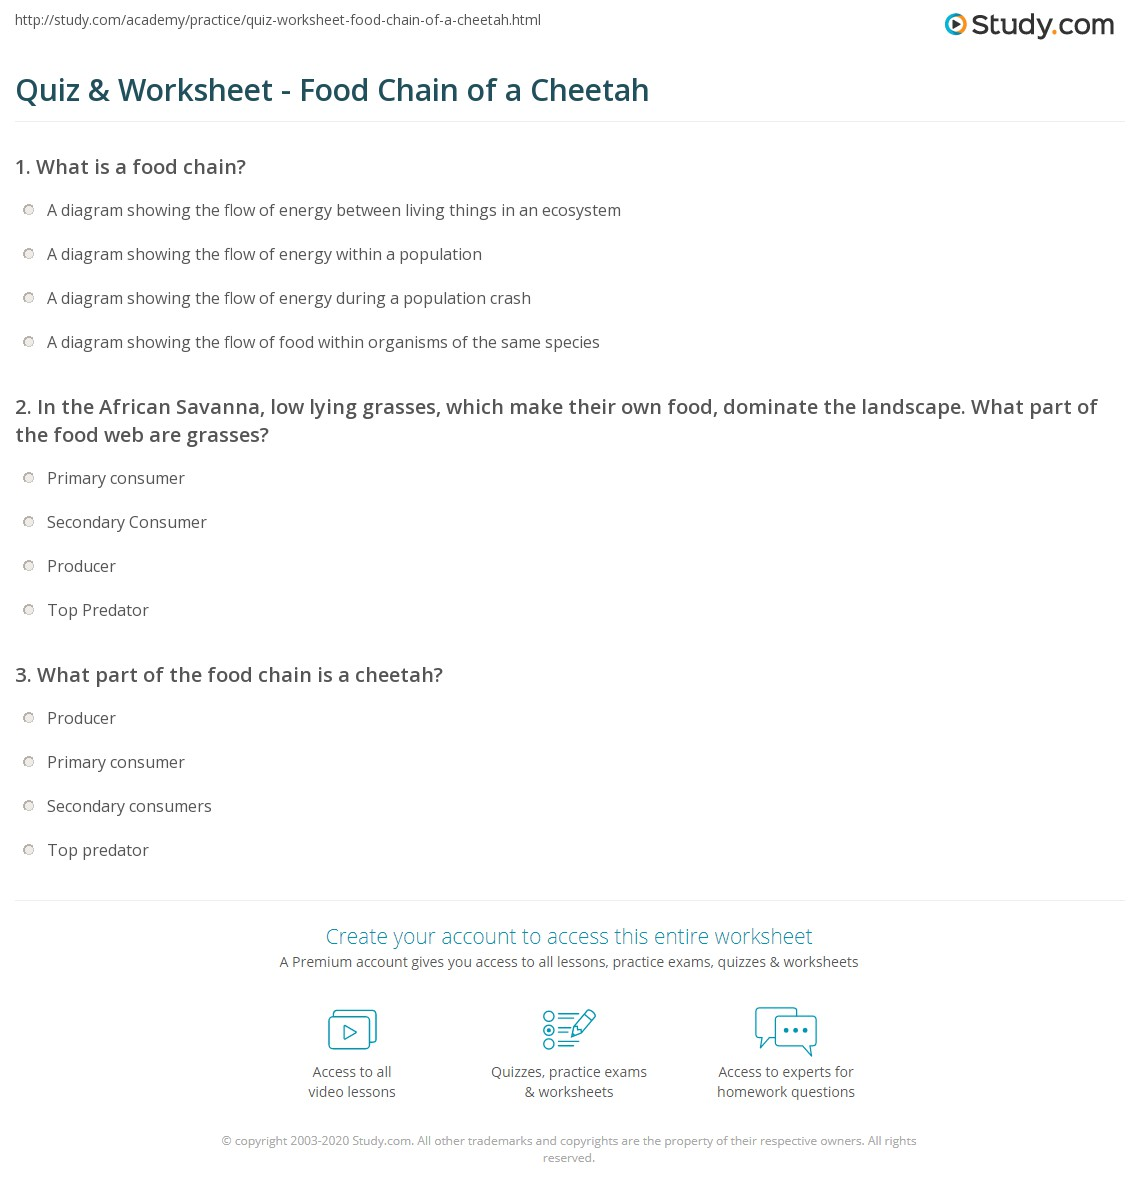 Quiz & Worksheet - Food Chain of a Cheetah | Study com